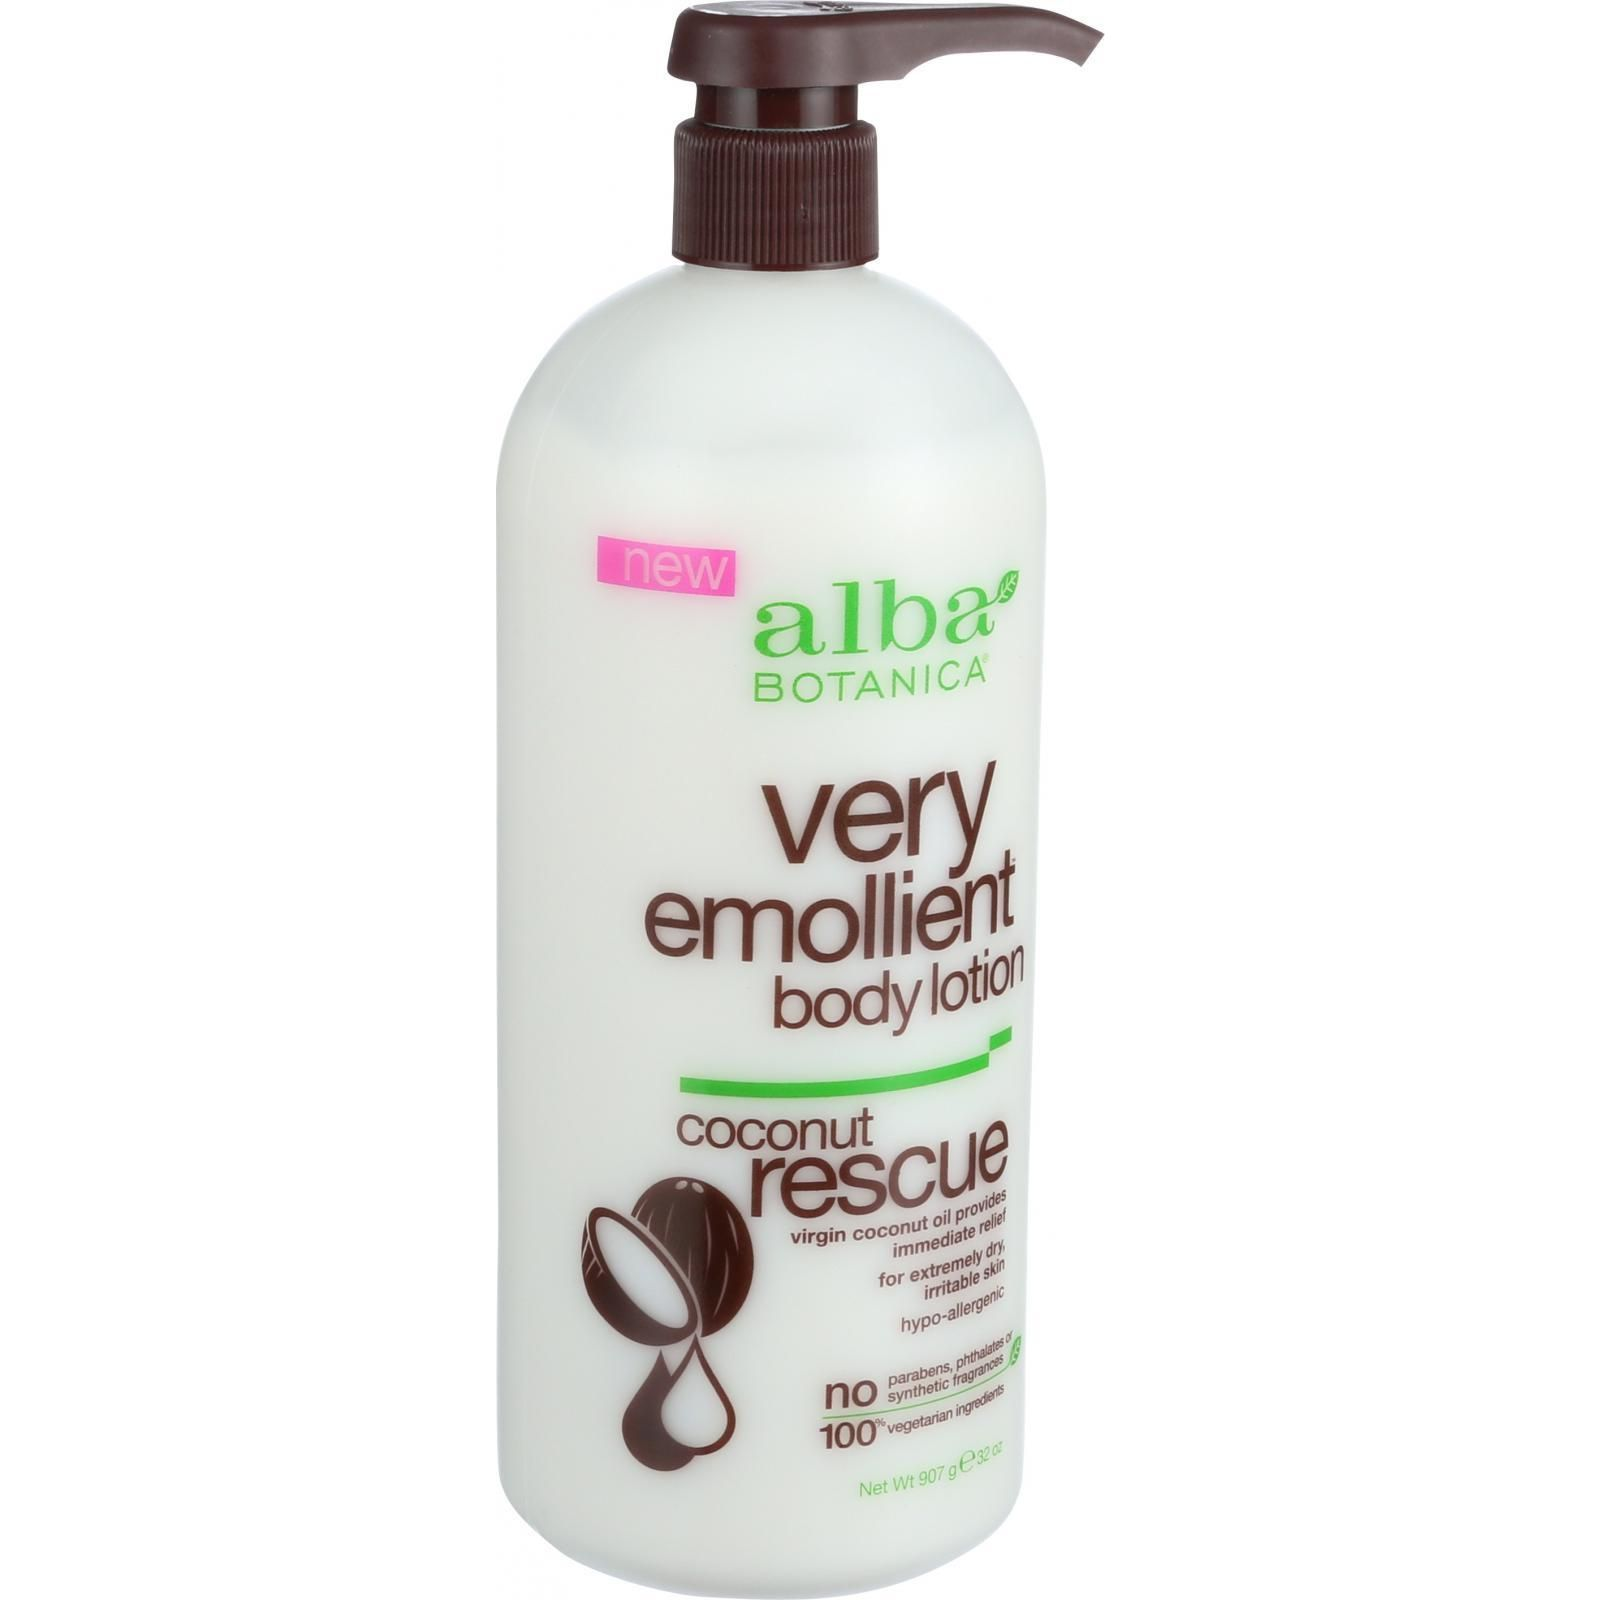 Alba Botanica Body Lotion  Very Emollient  Coconut Rescue  32 oz